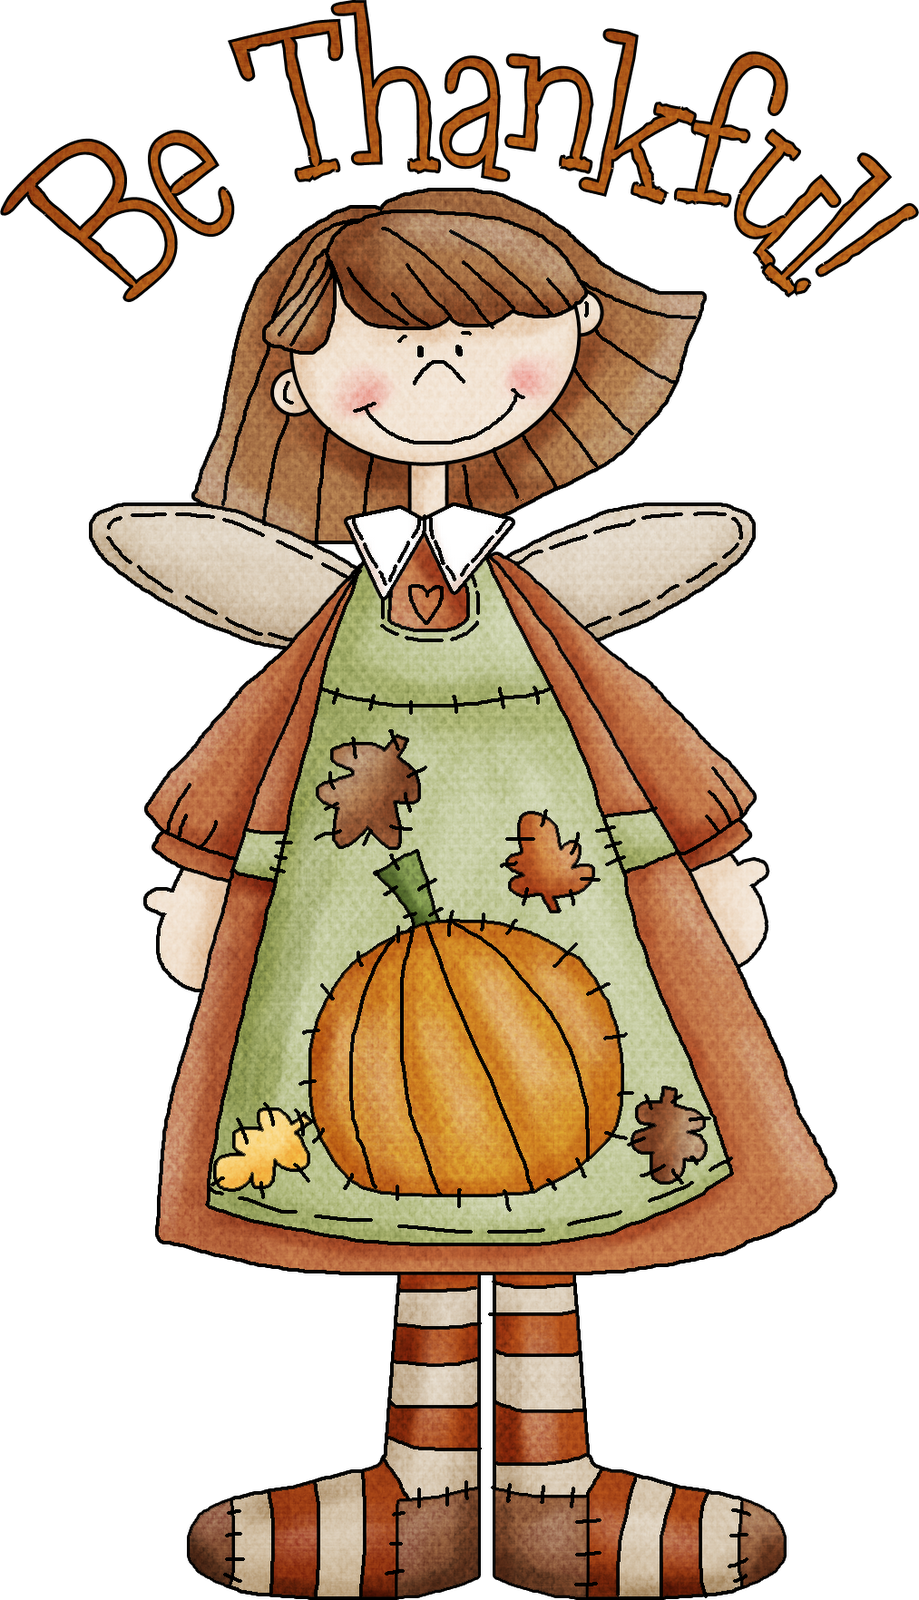 Round thanksgiving clipart clip art transparent library Thanking God for everything! Enjoying my blessings with a thankful ... clip art transparent library